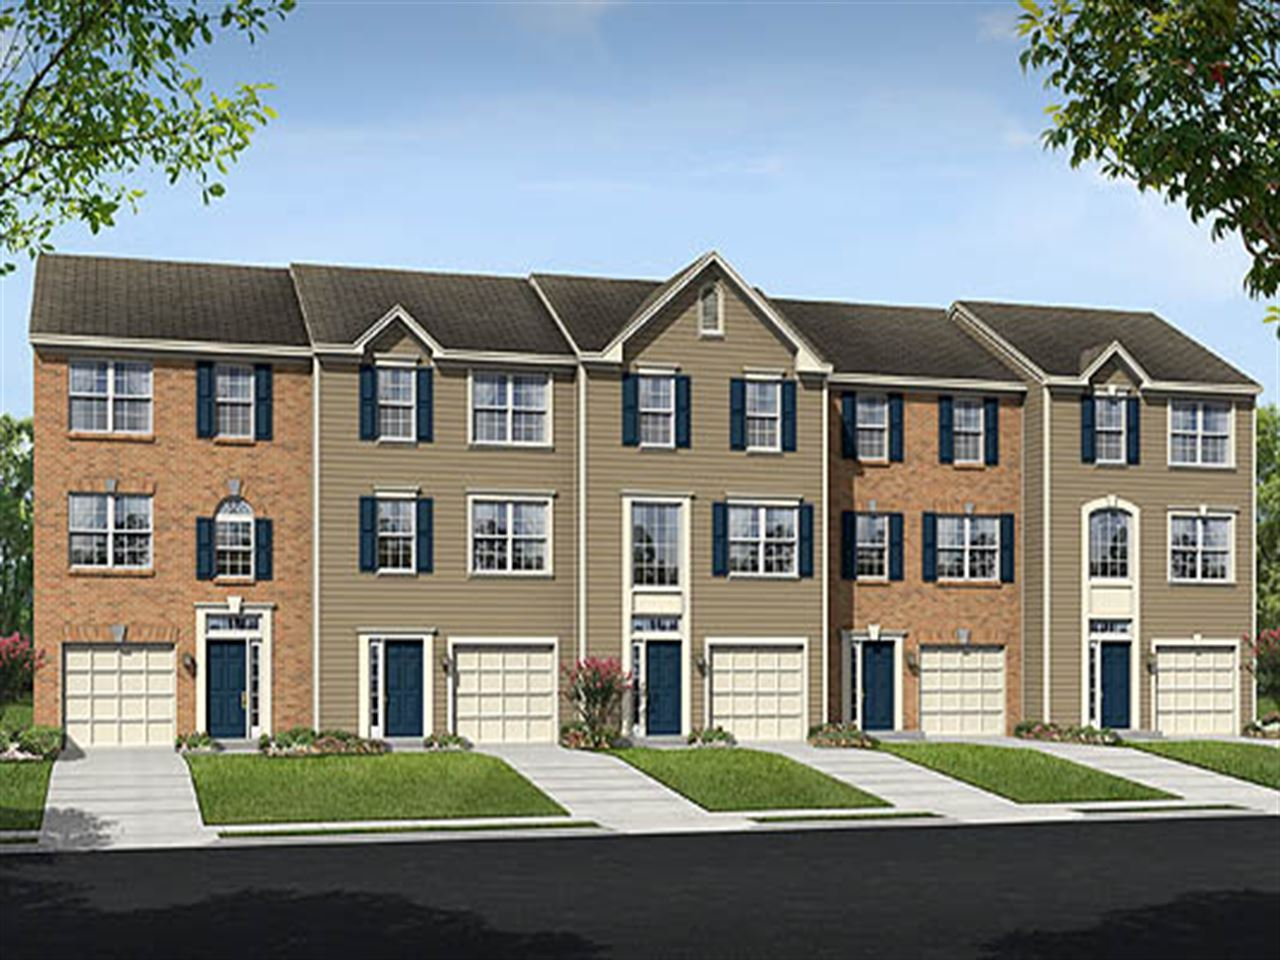 3709 Peace Chance Drive, Randallstown, MD Homes & Land - Real Estate